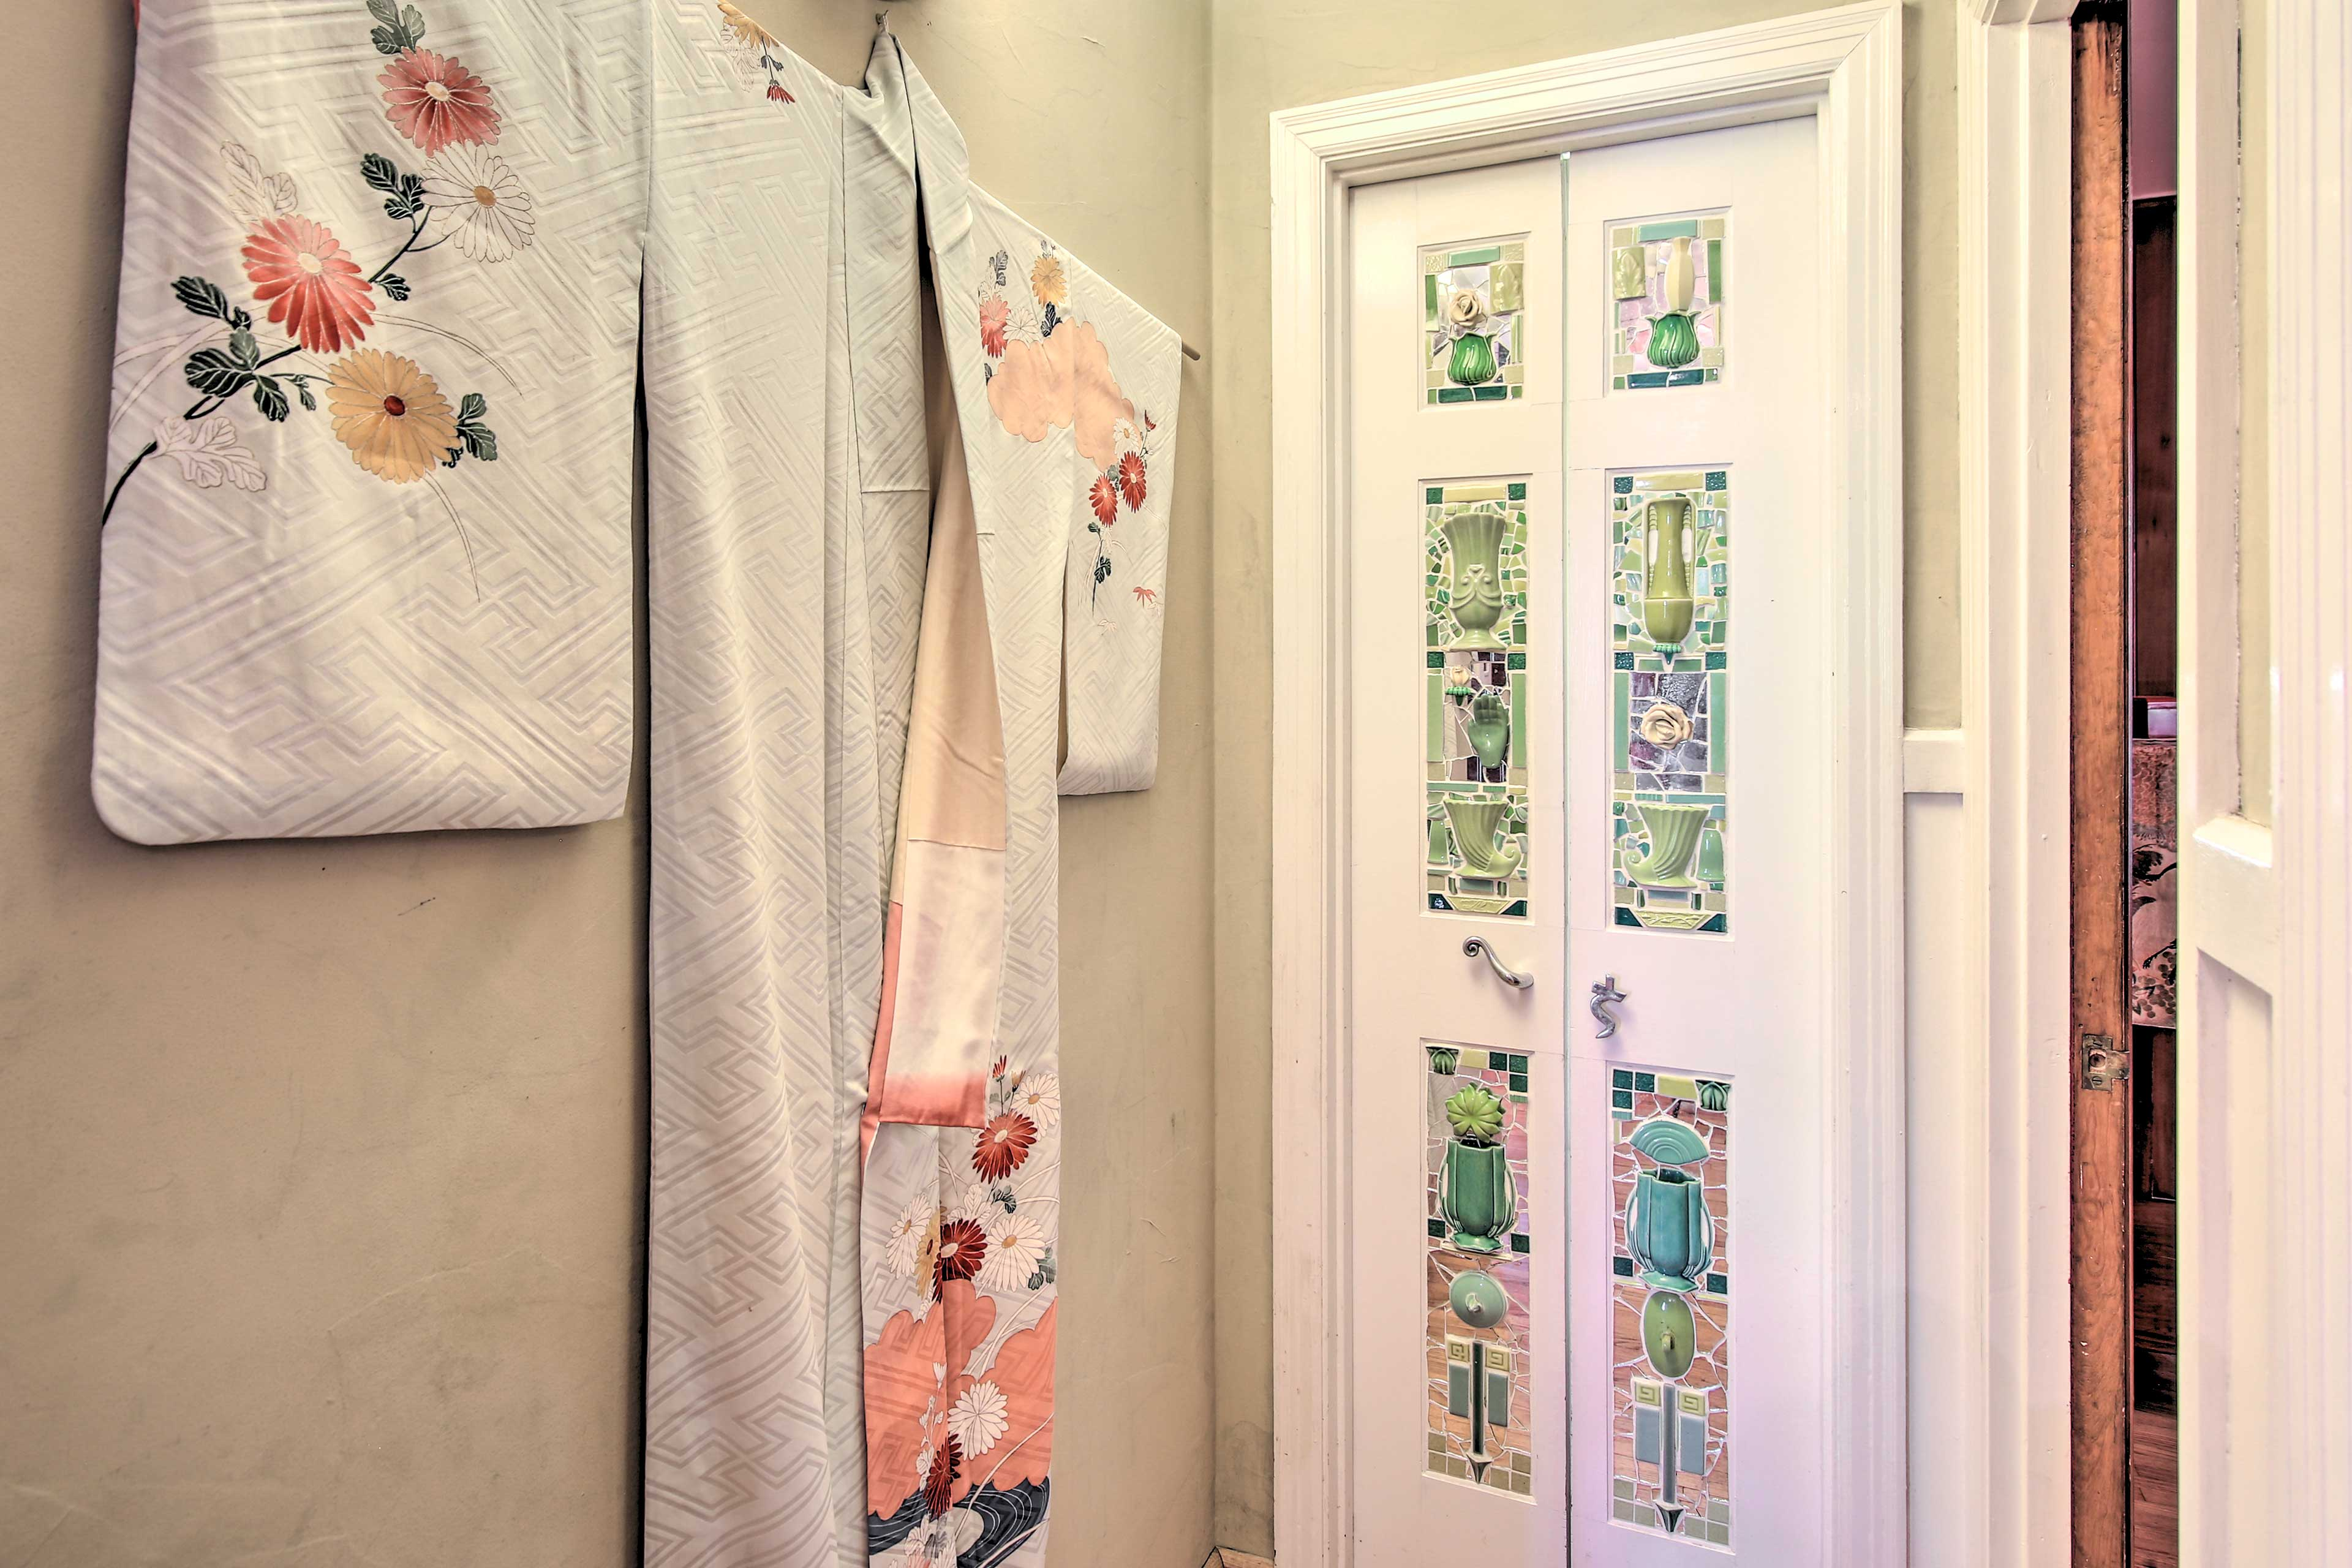 Beyond these colorful doors is the second full bathroom.